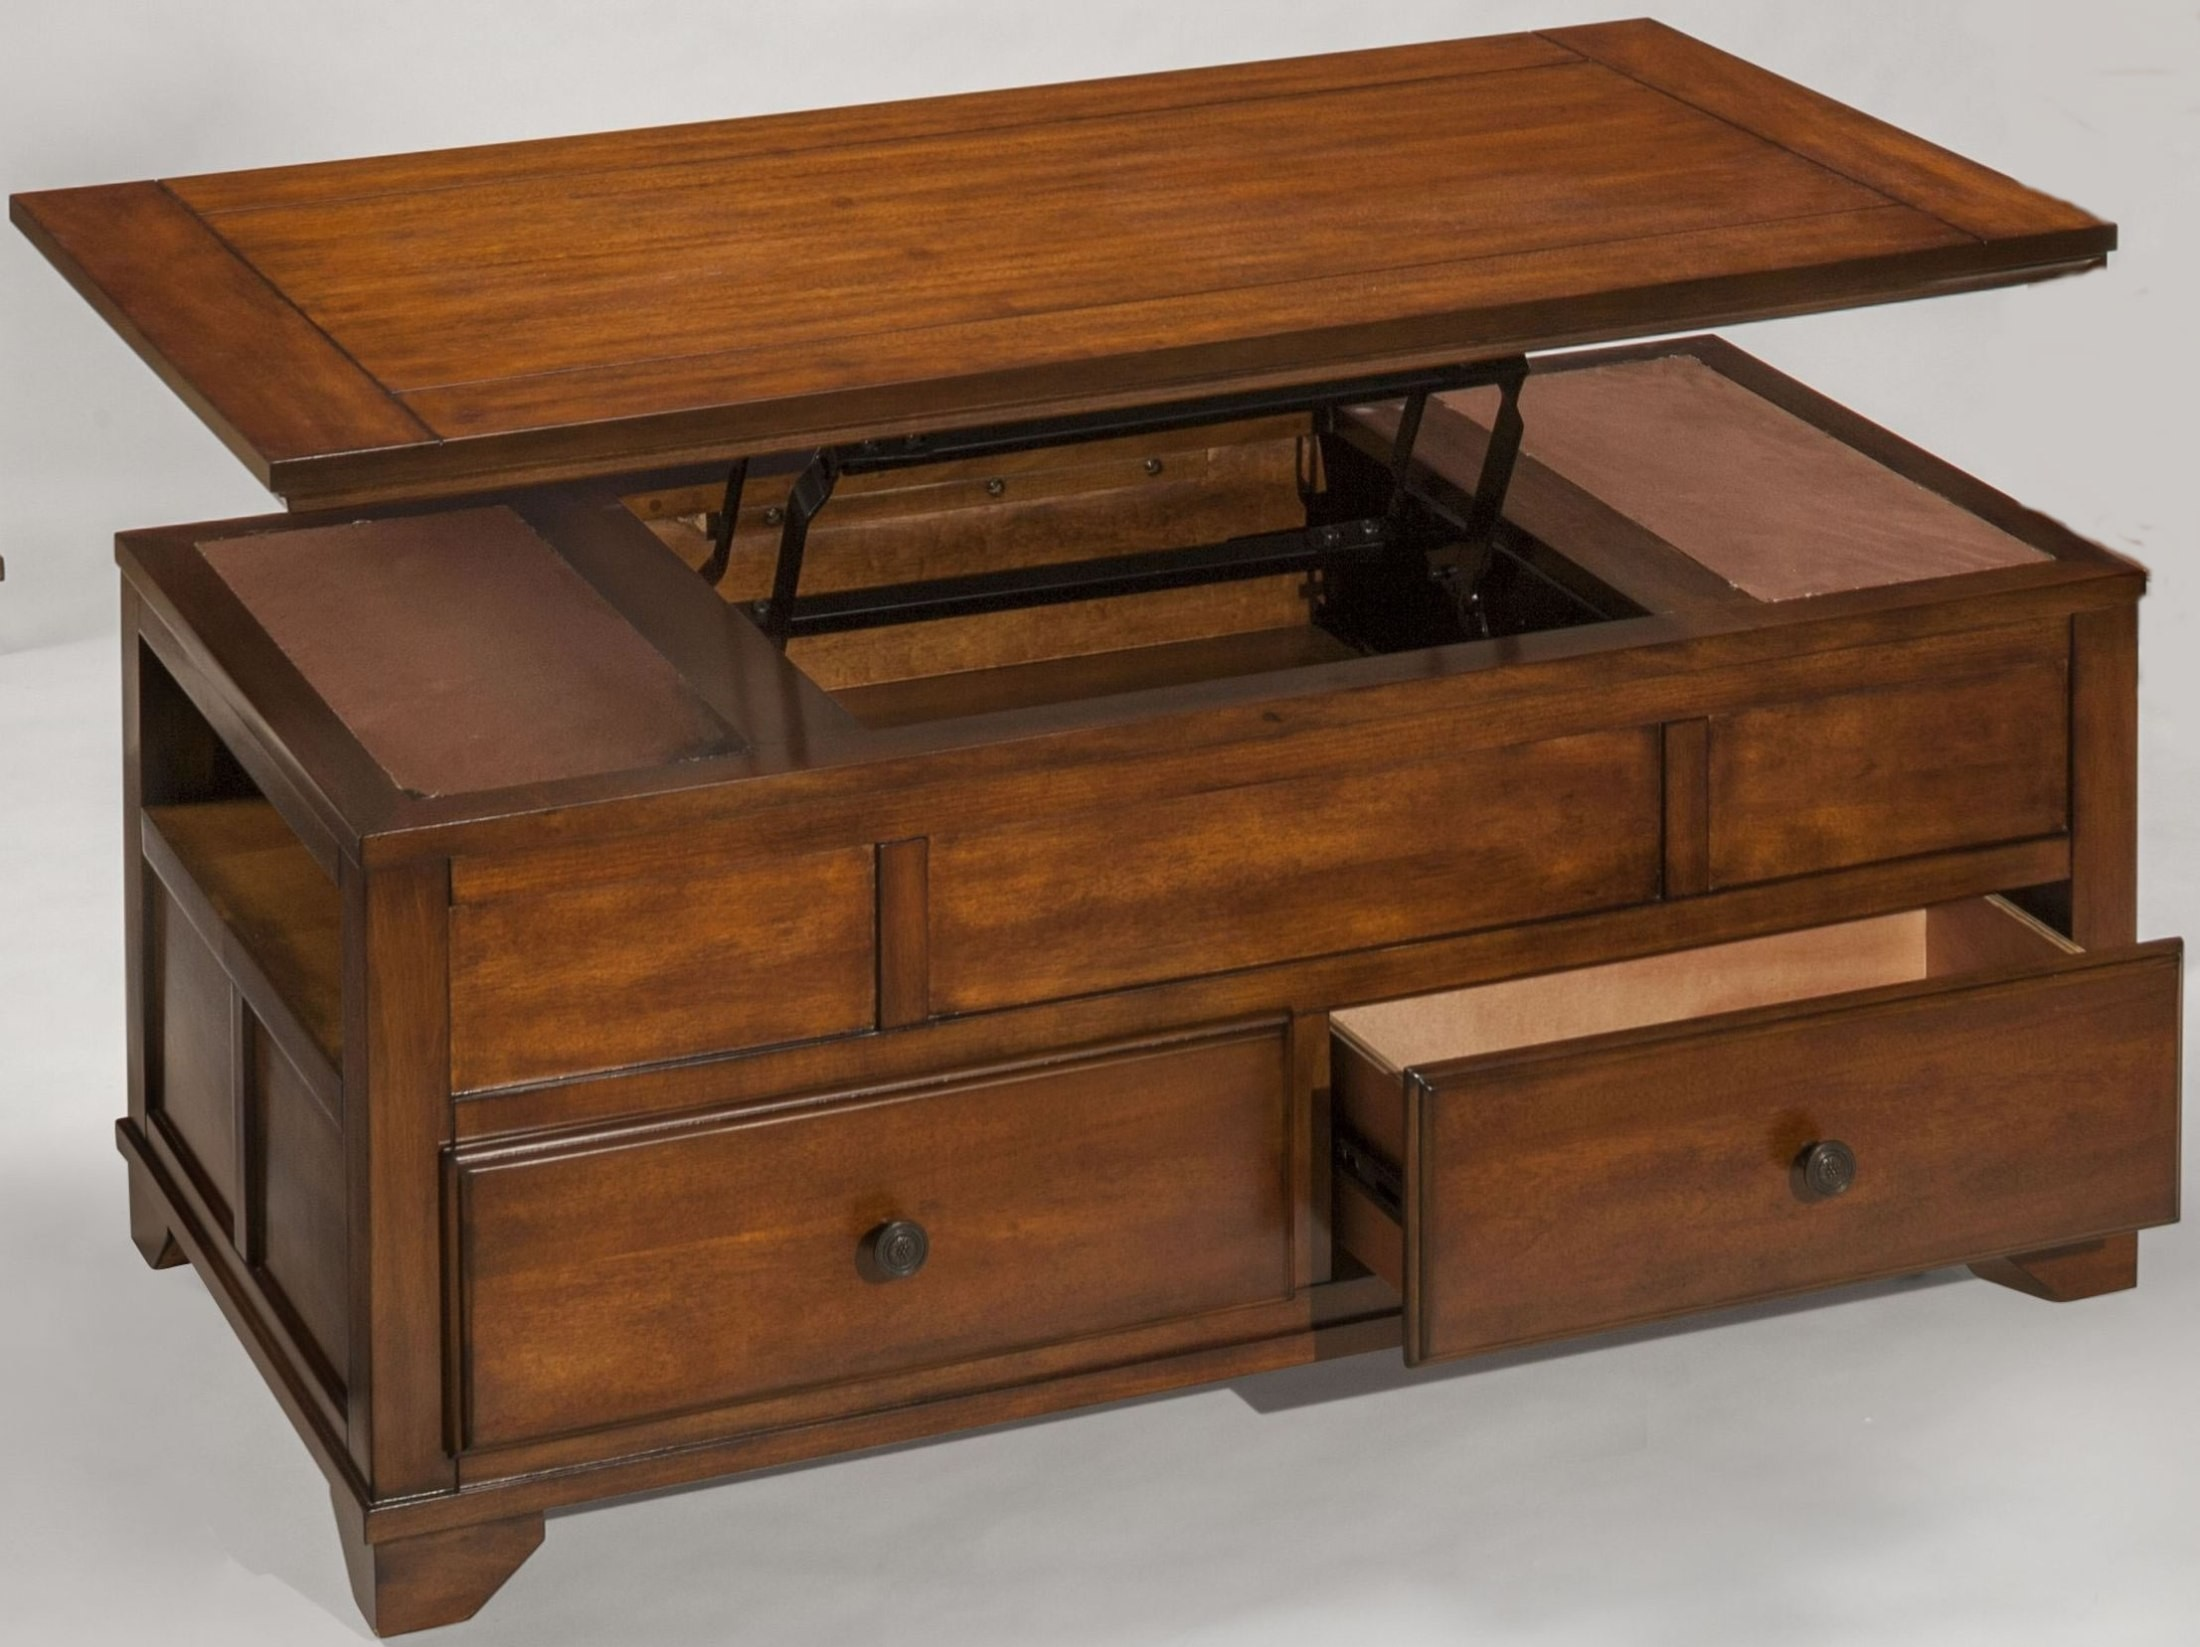 lynch cherry lift top cocktail table t9905 15 new classics. Black Bedroom Furniture Sets. Home Design Ideas